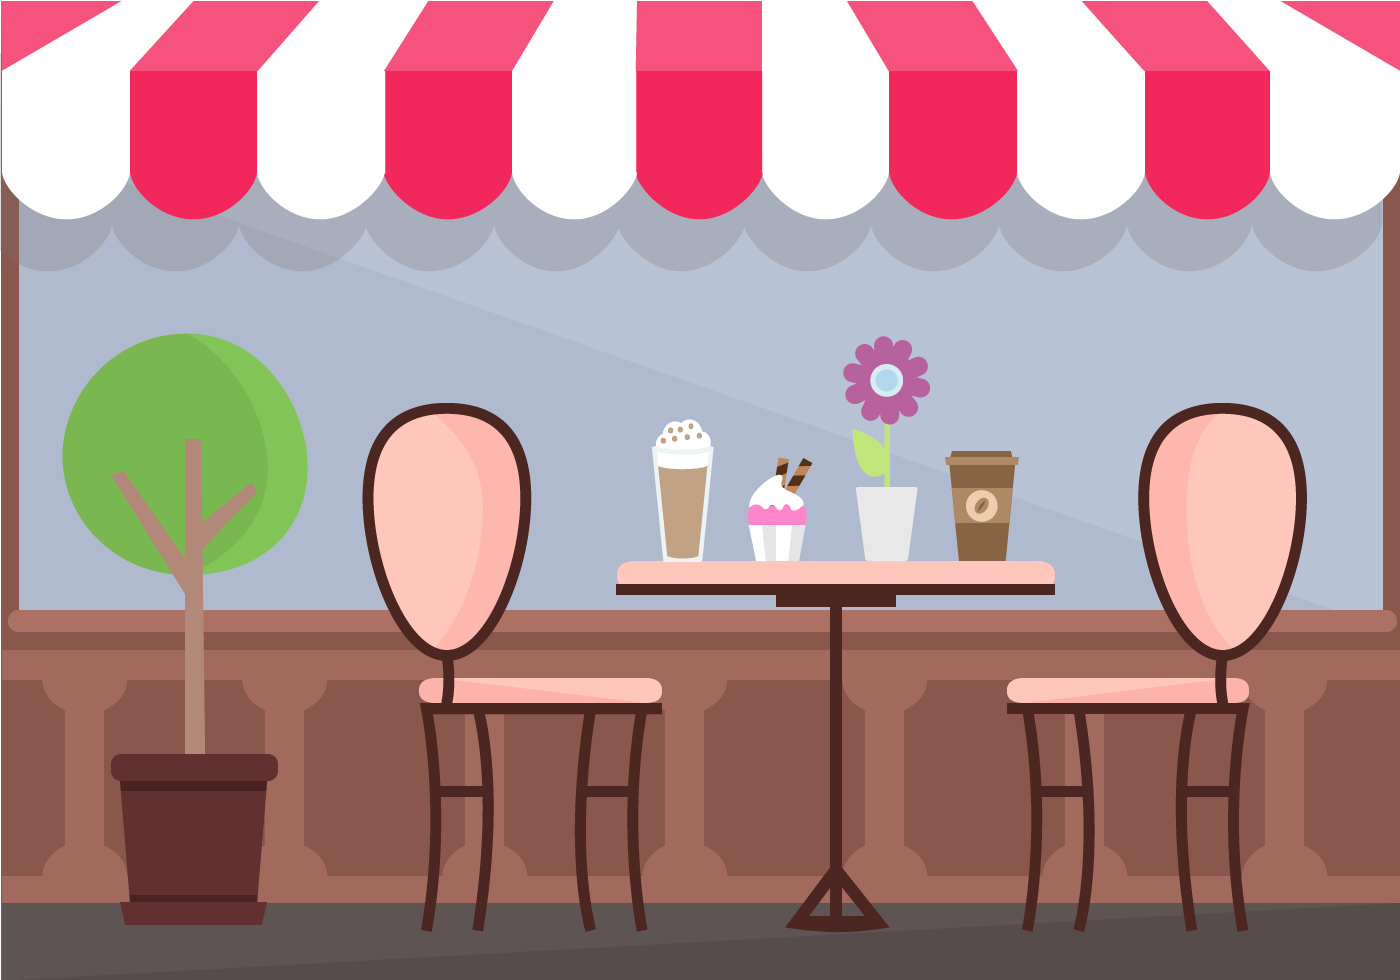 Inside clipart cafe Background Zone coffee image clipart